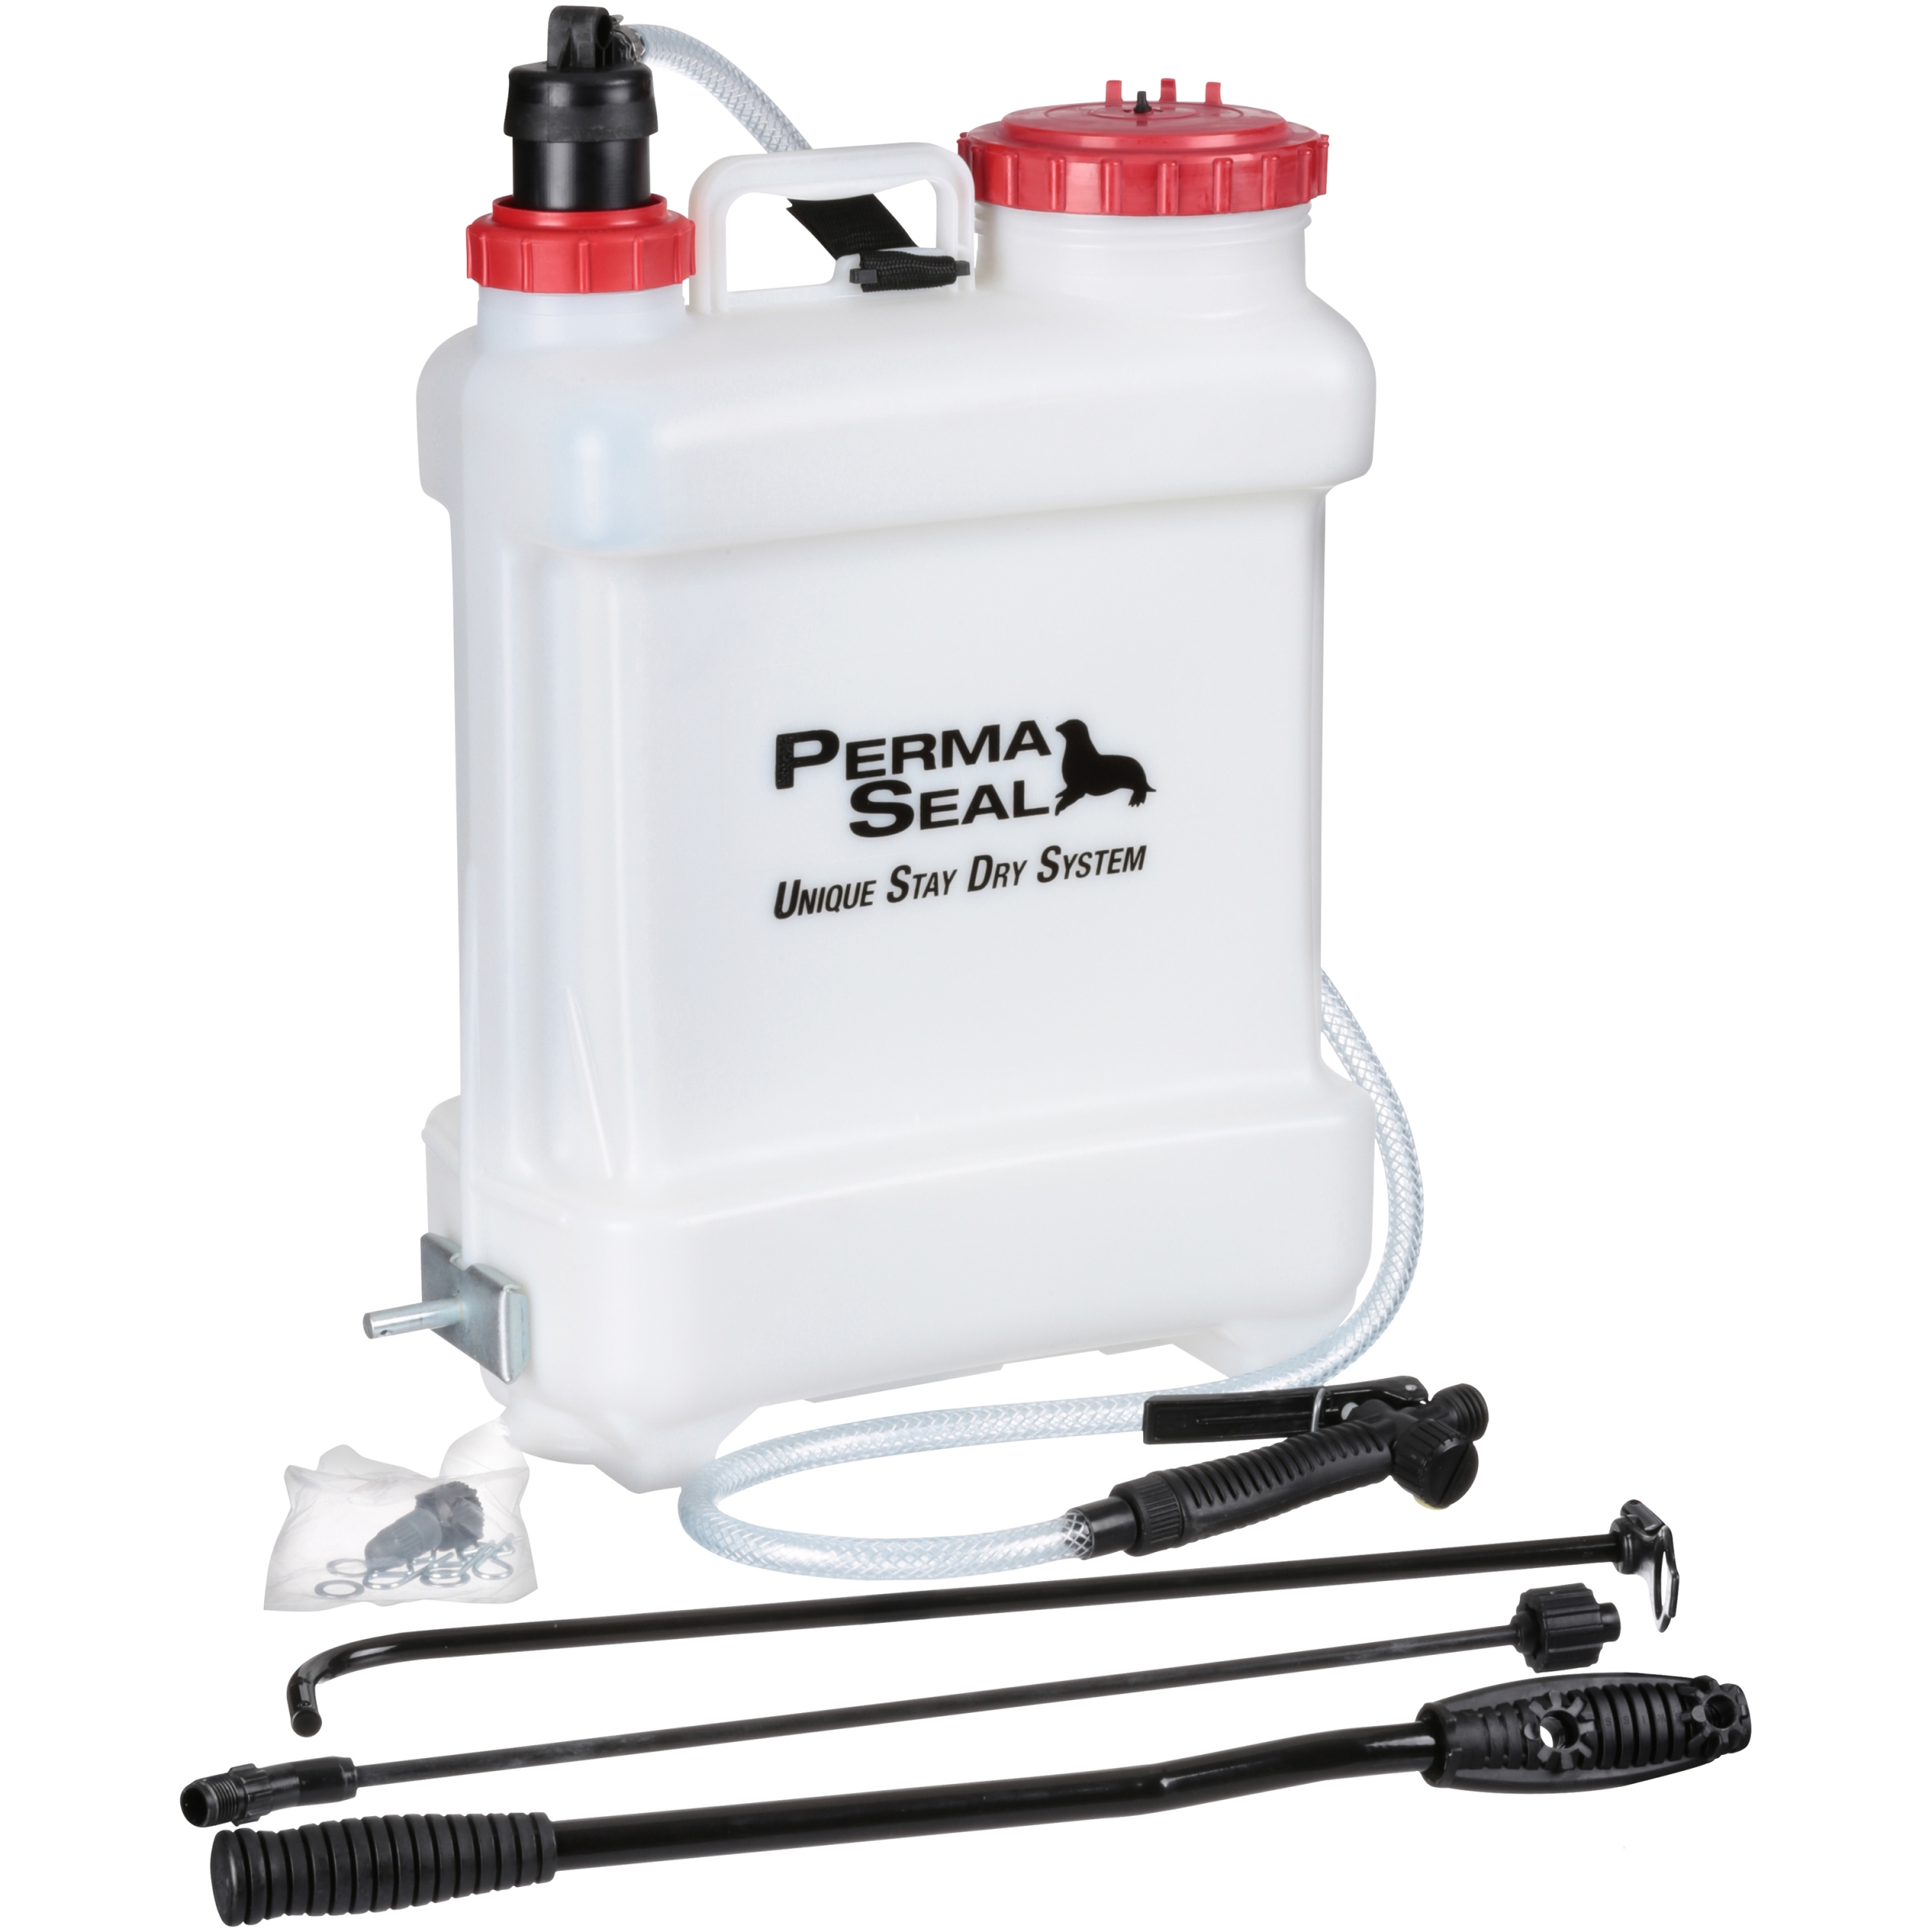 RL Flo Master Perma Seal Internal Piston Pump Backpack Sprayer by Root-Lowell Manufacturing Co.